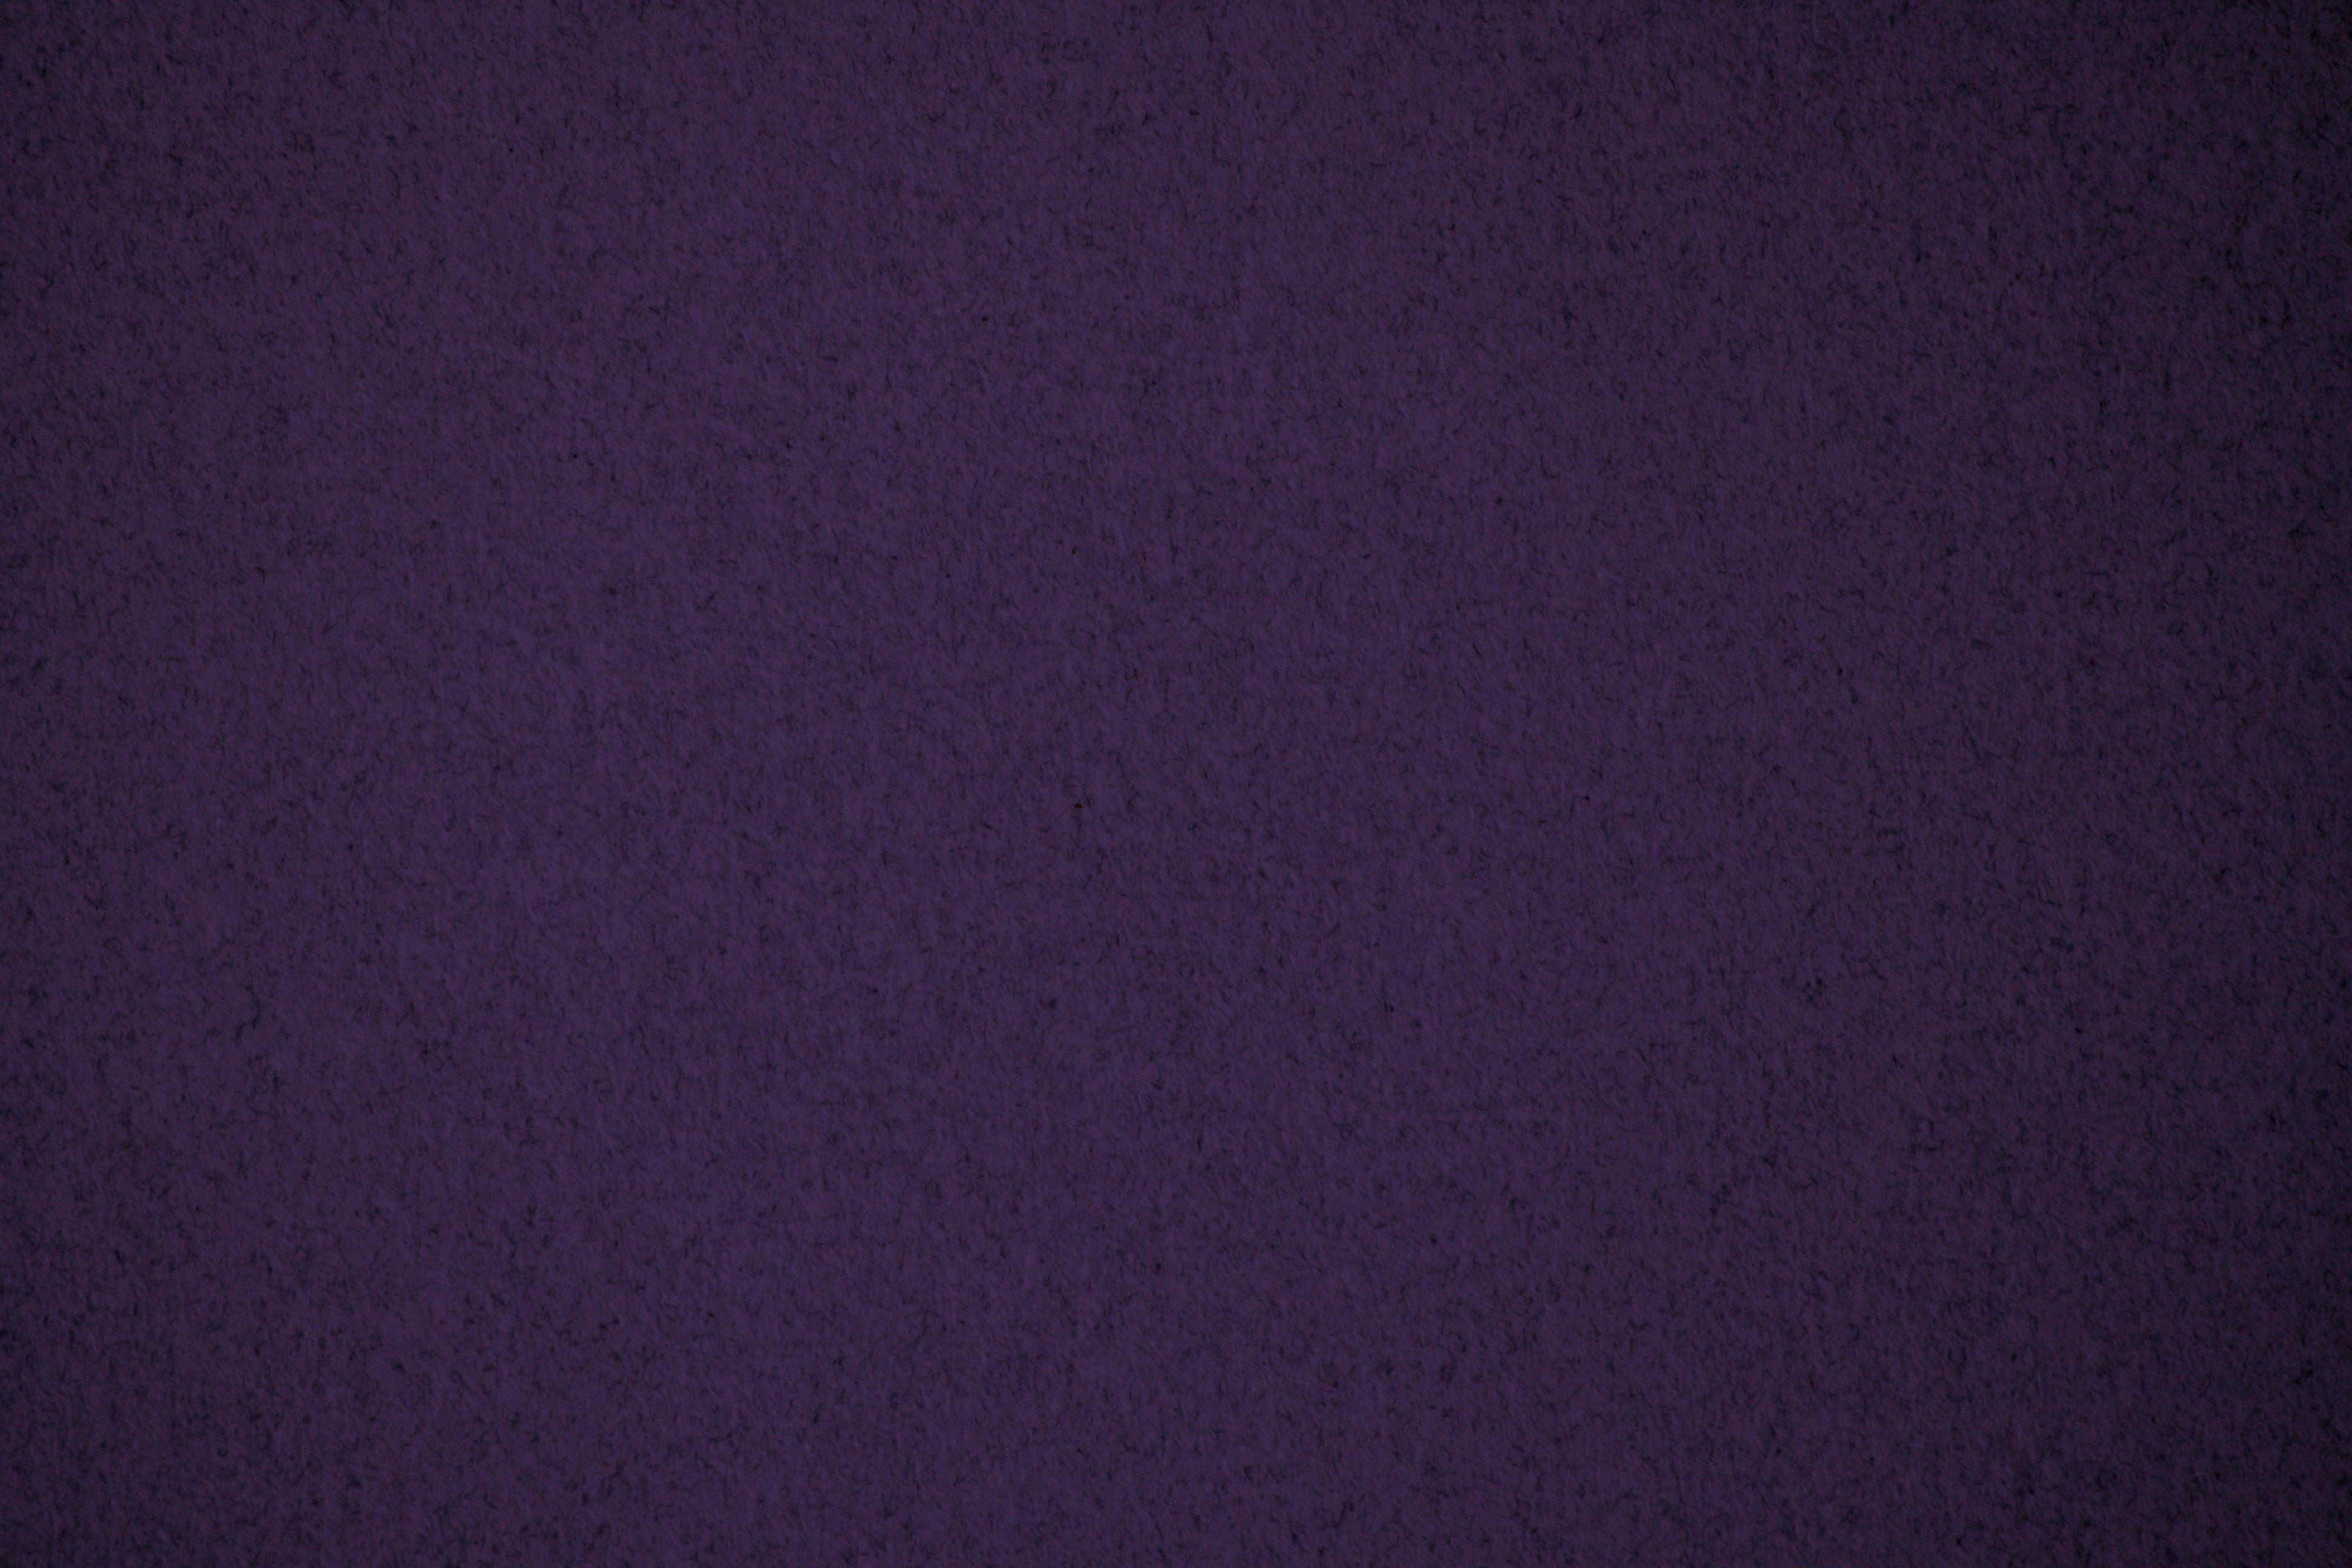 Dark Purple Speckled Paper Texture Picture